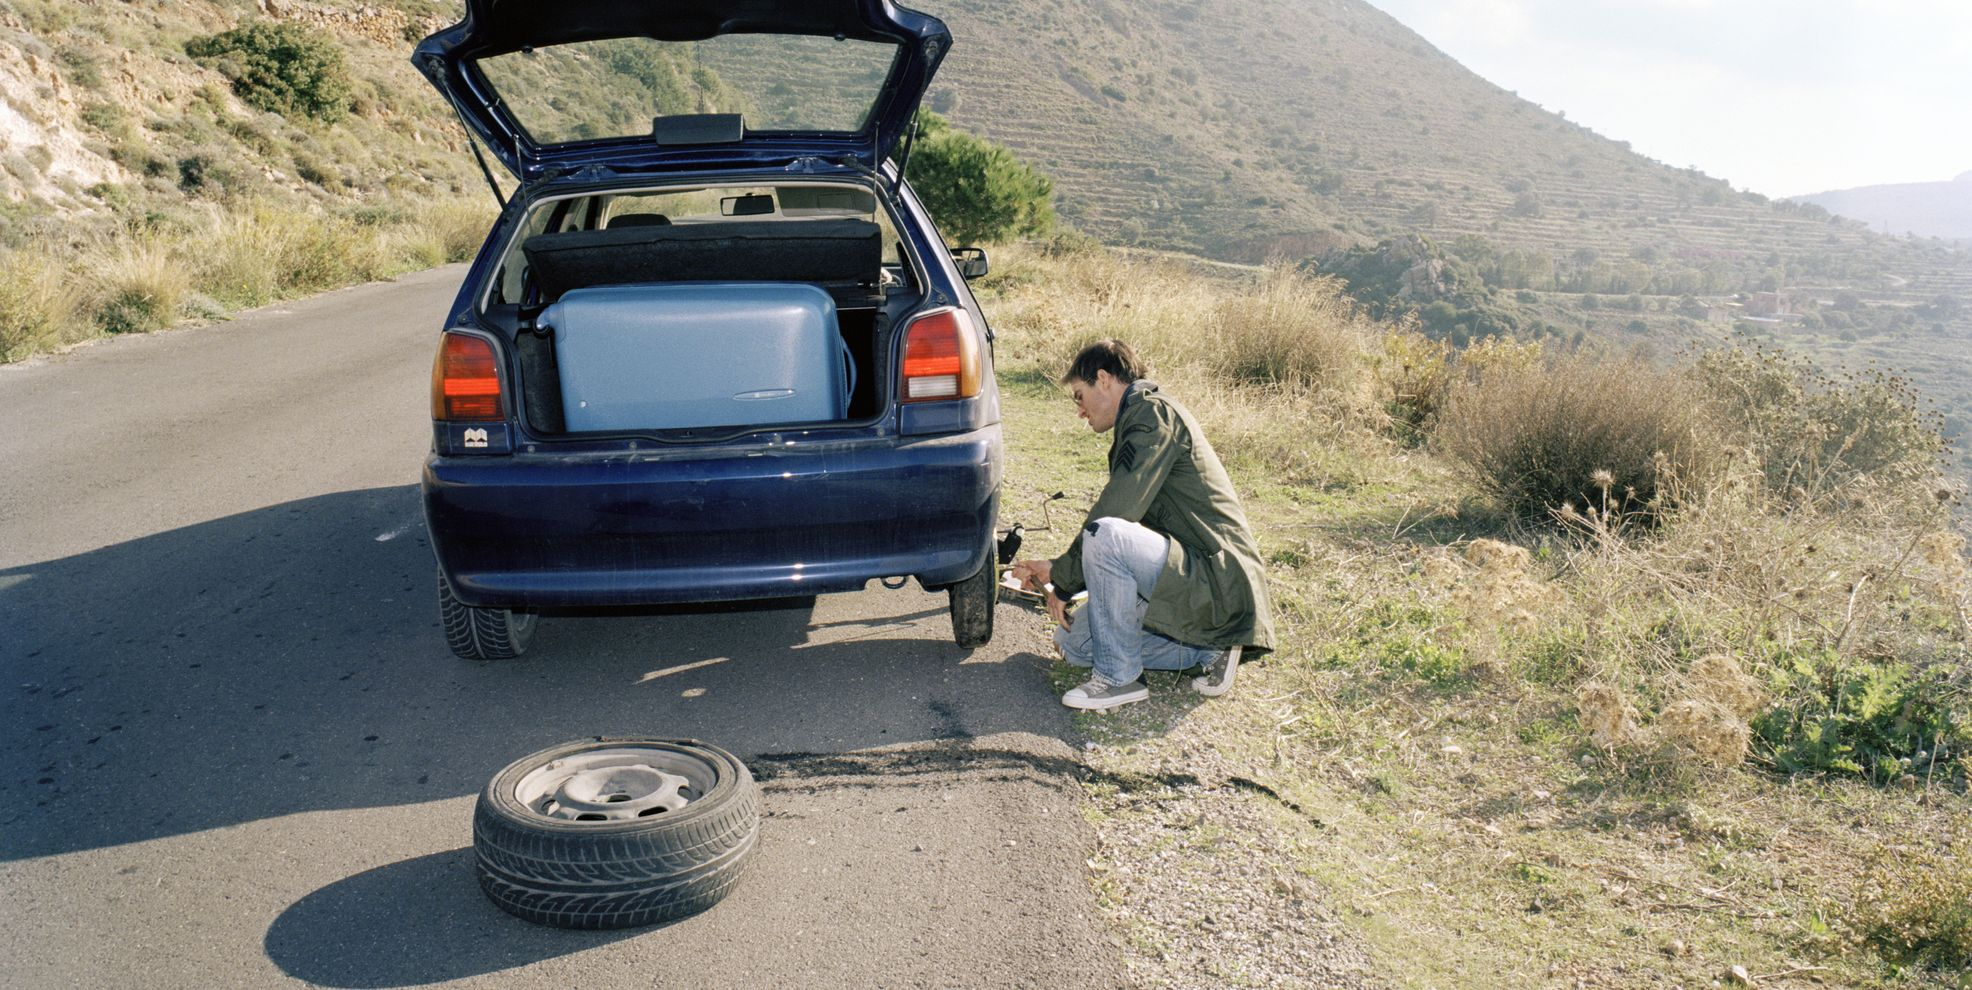 Man fixing flat tire, car packed for road trip